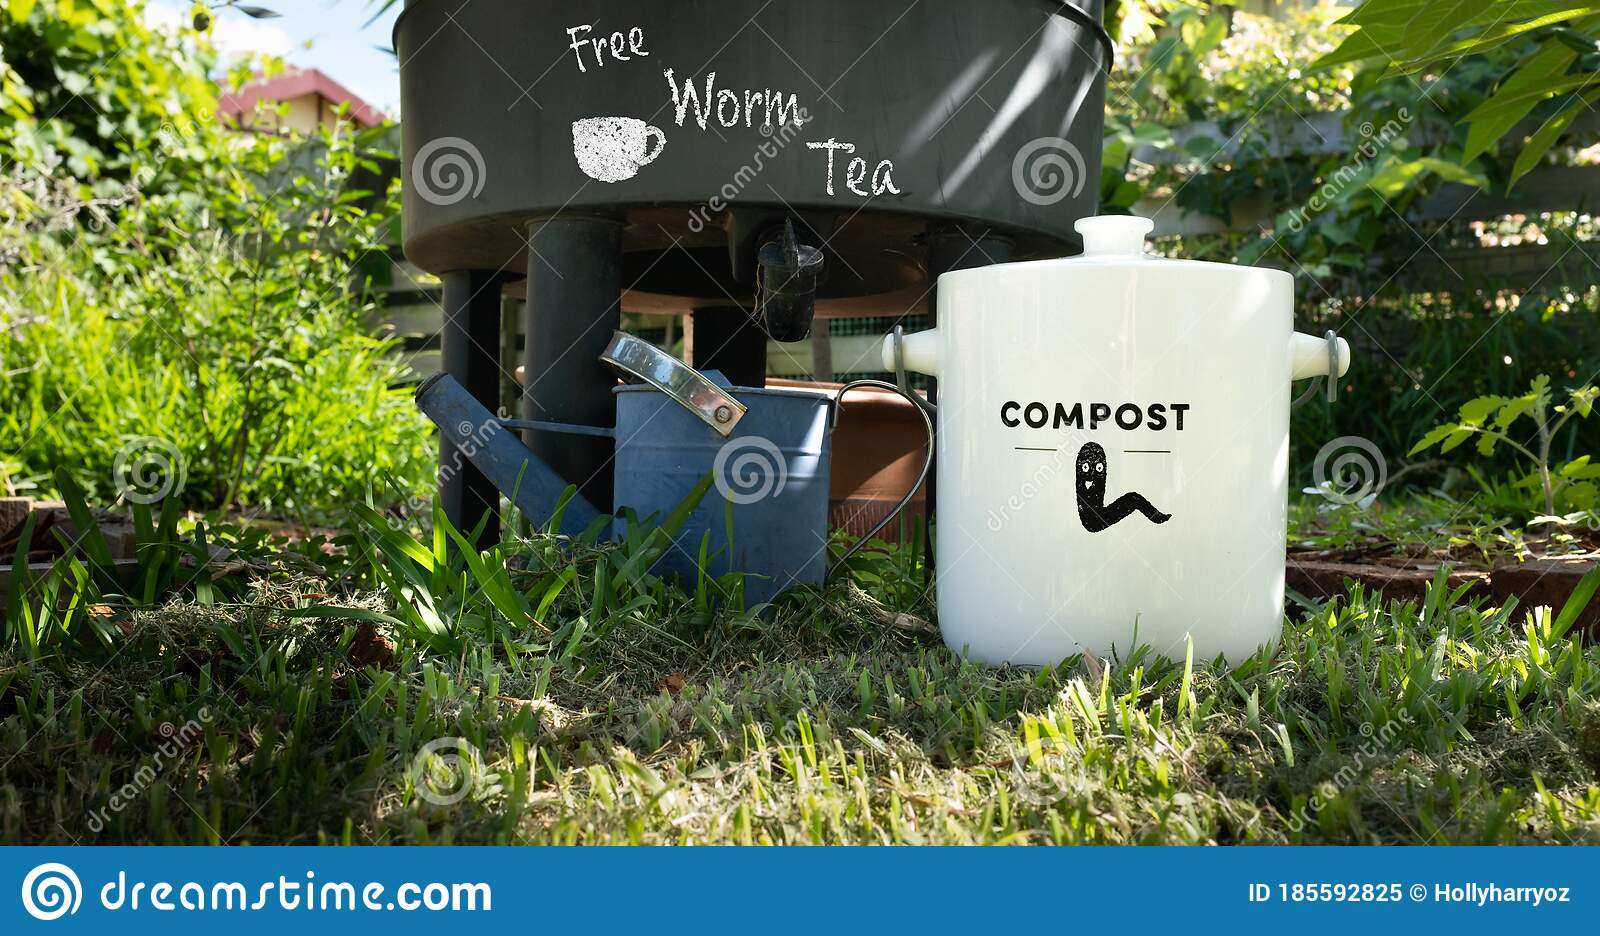 Worm Farm And Kitchen Compost Pot In Organic Australian Garden With Free Worm Tea Sustainable Living And Zero Waste Lifestyle Stock Image Image Of Outside Gardens 185592825